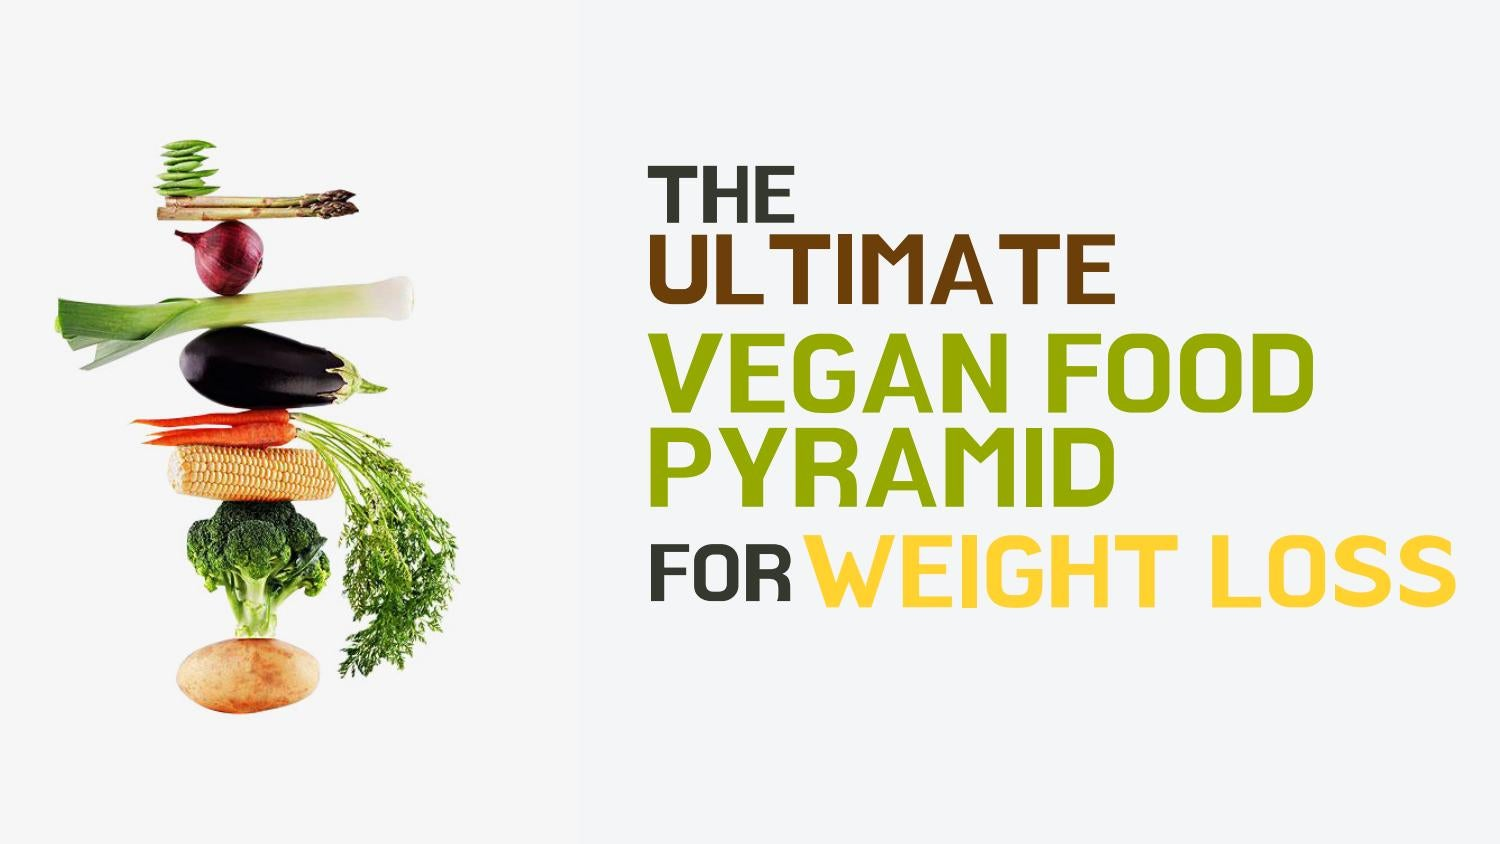 The Ultimate Vegan Food Pyramid For Weight Loss By Cynthiacoopercc14 Issuu